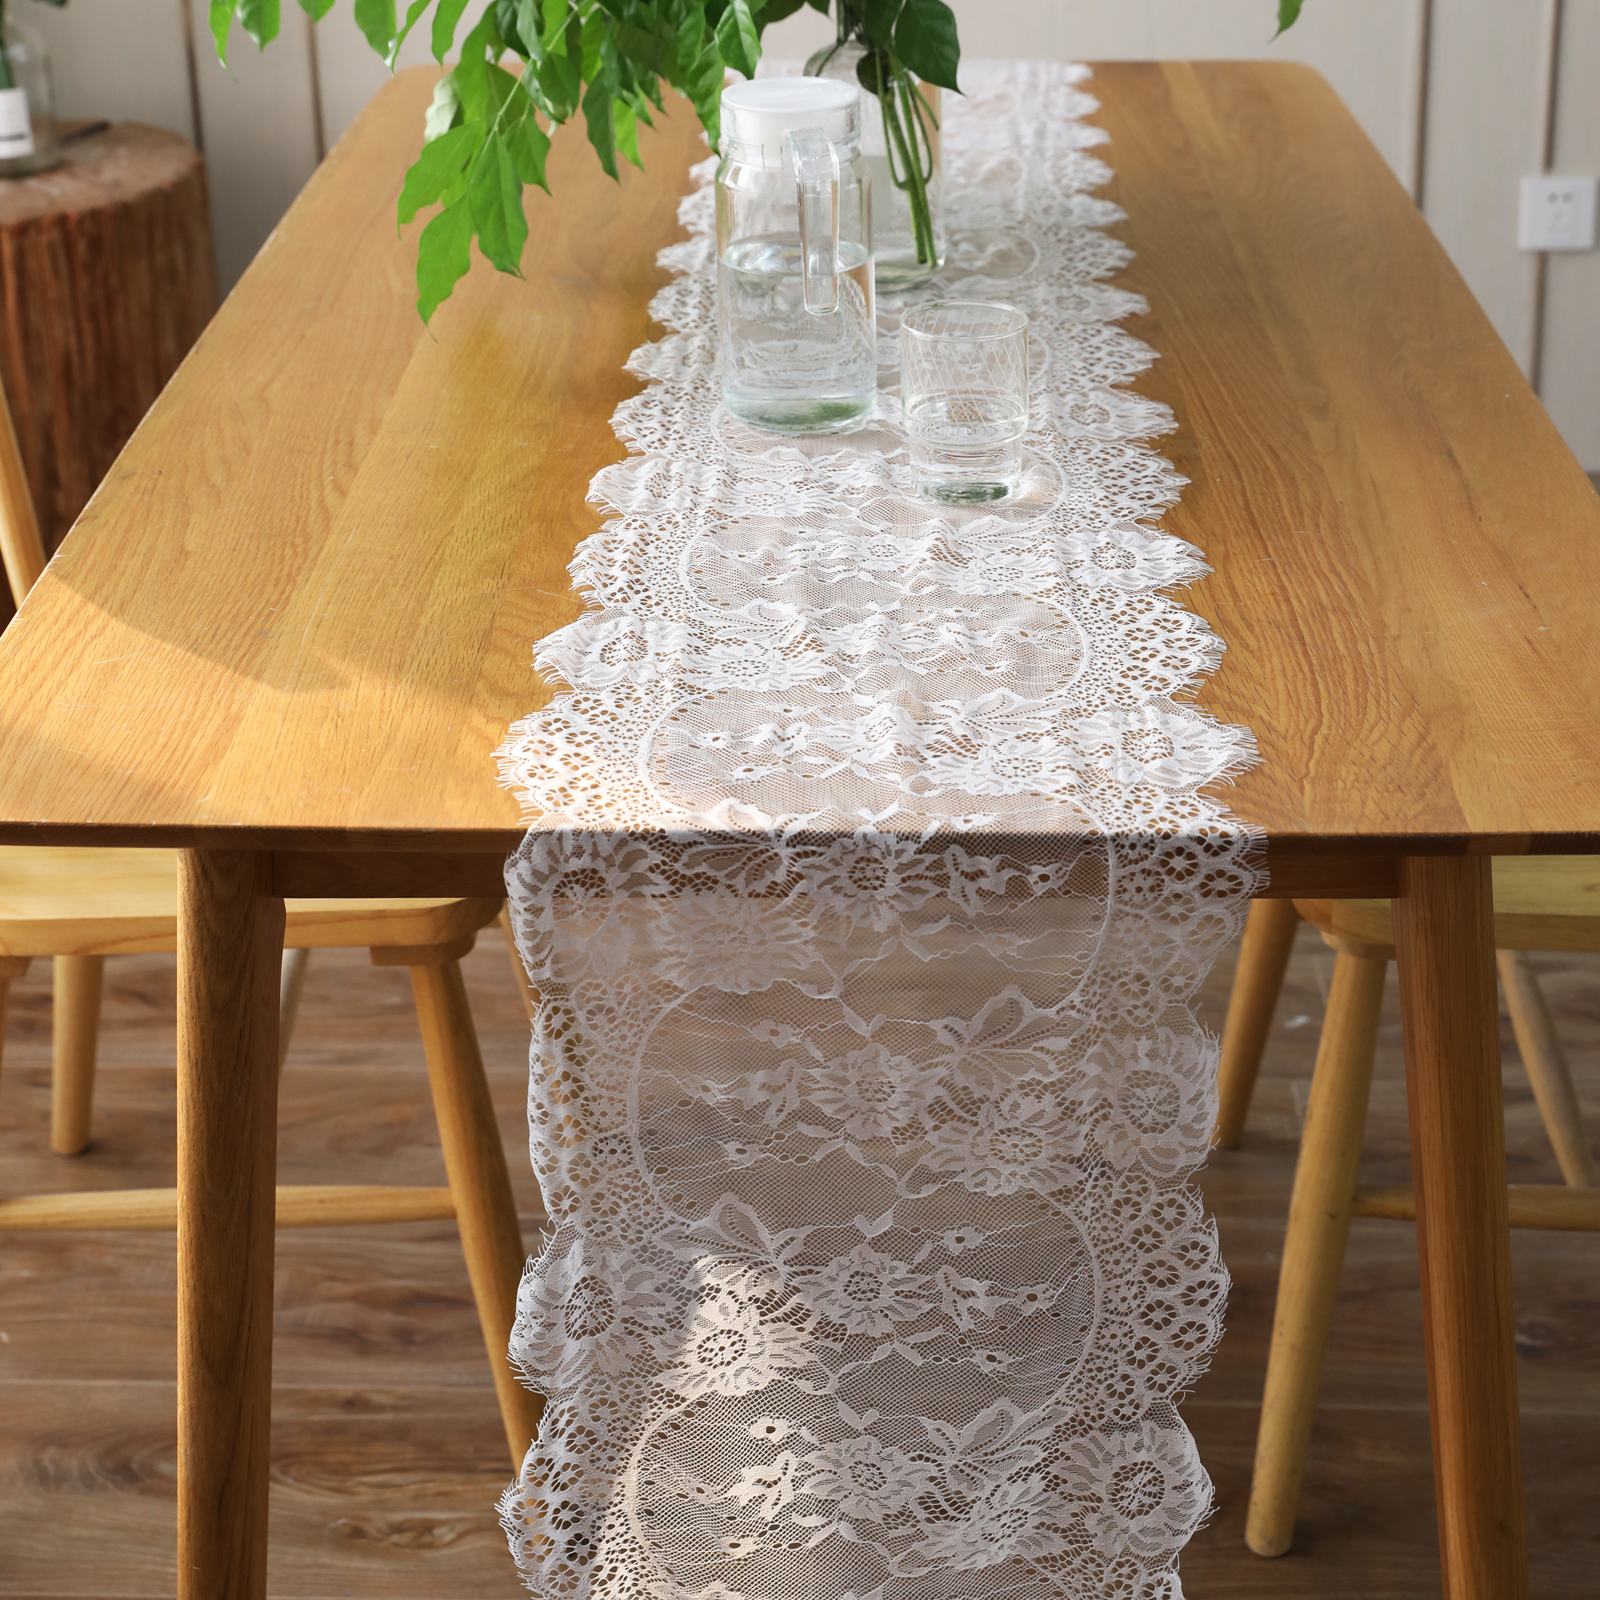 1pcs White Lace Table Runner Black Table Cover Chair Sash For Hotel Banquet Wedding Party Table Decoration